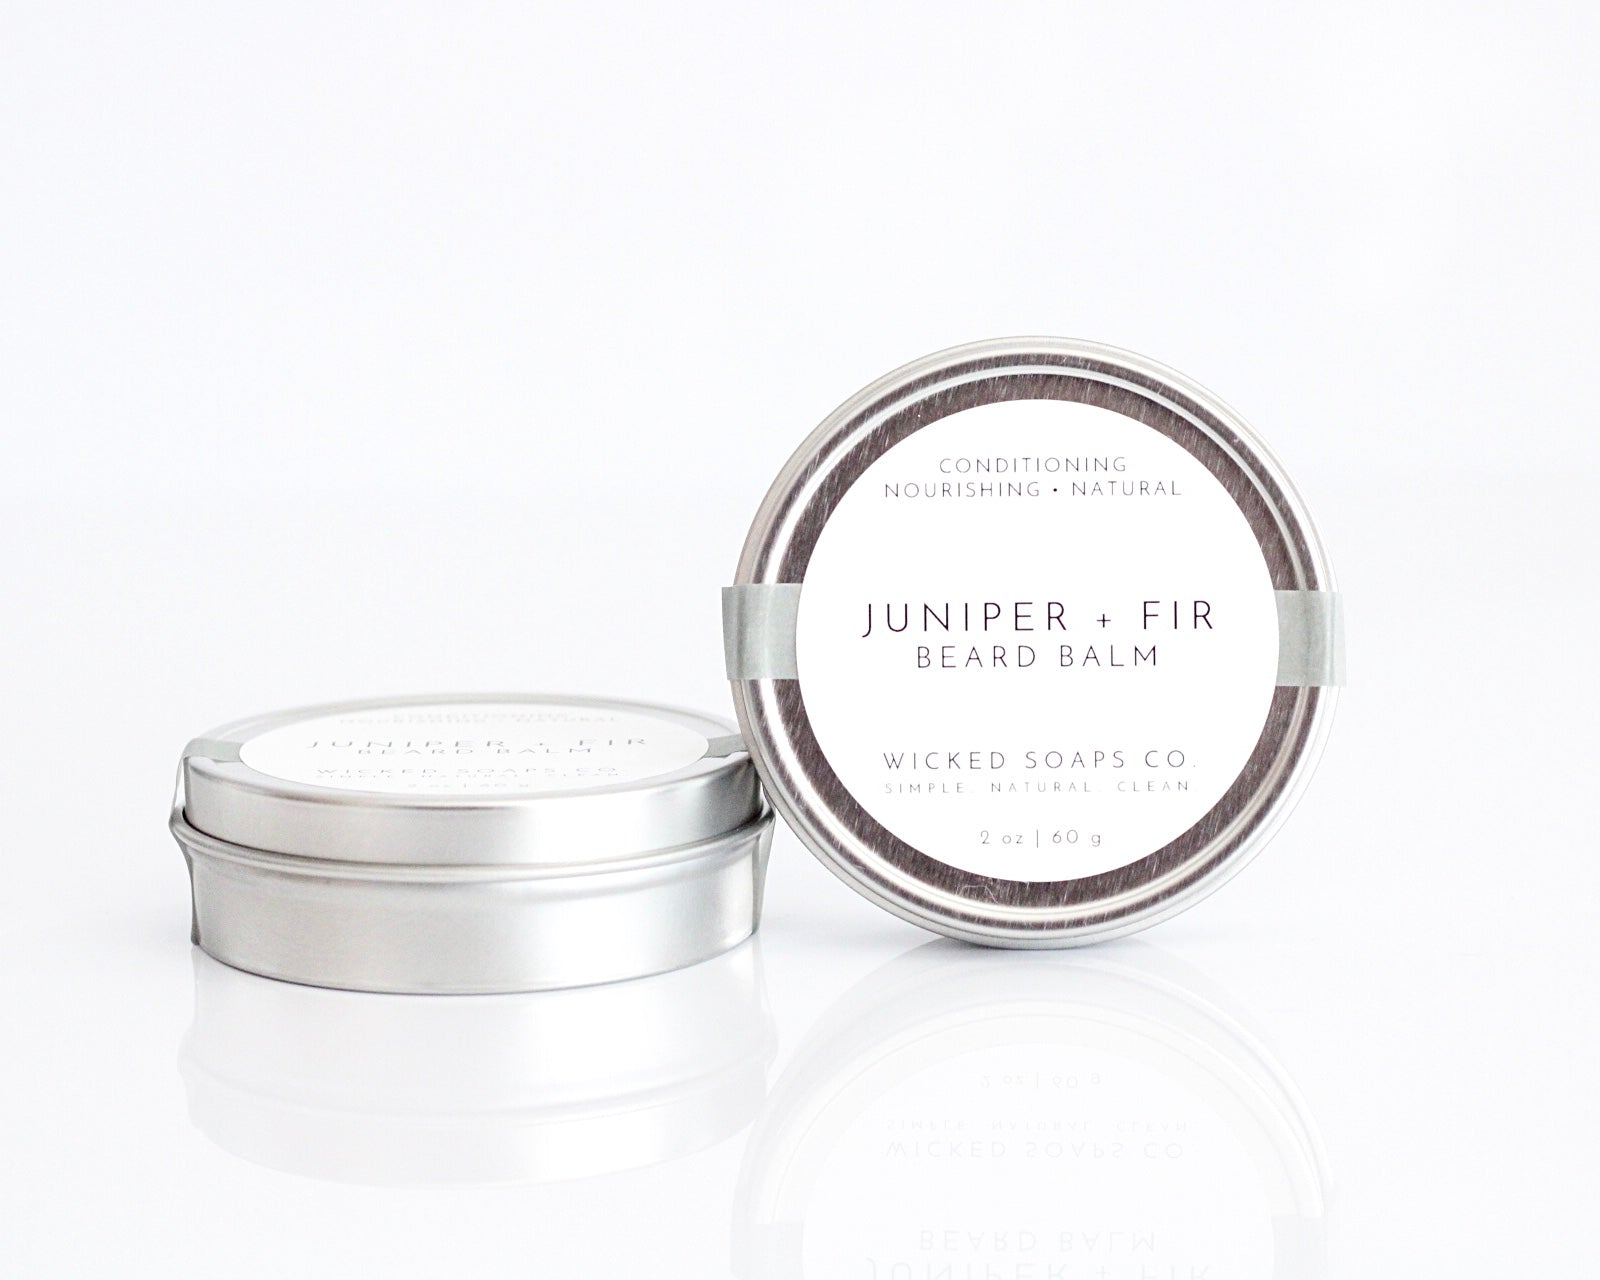 Juniper + Fir Beard Balm